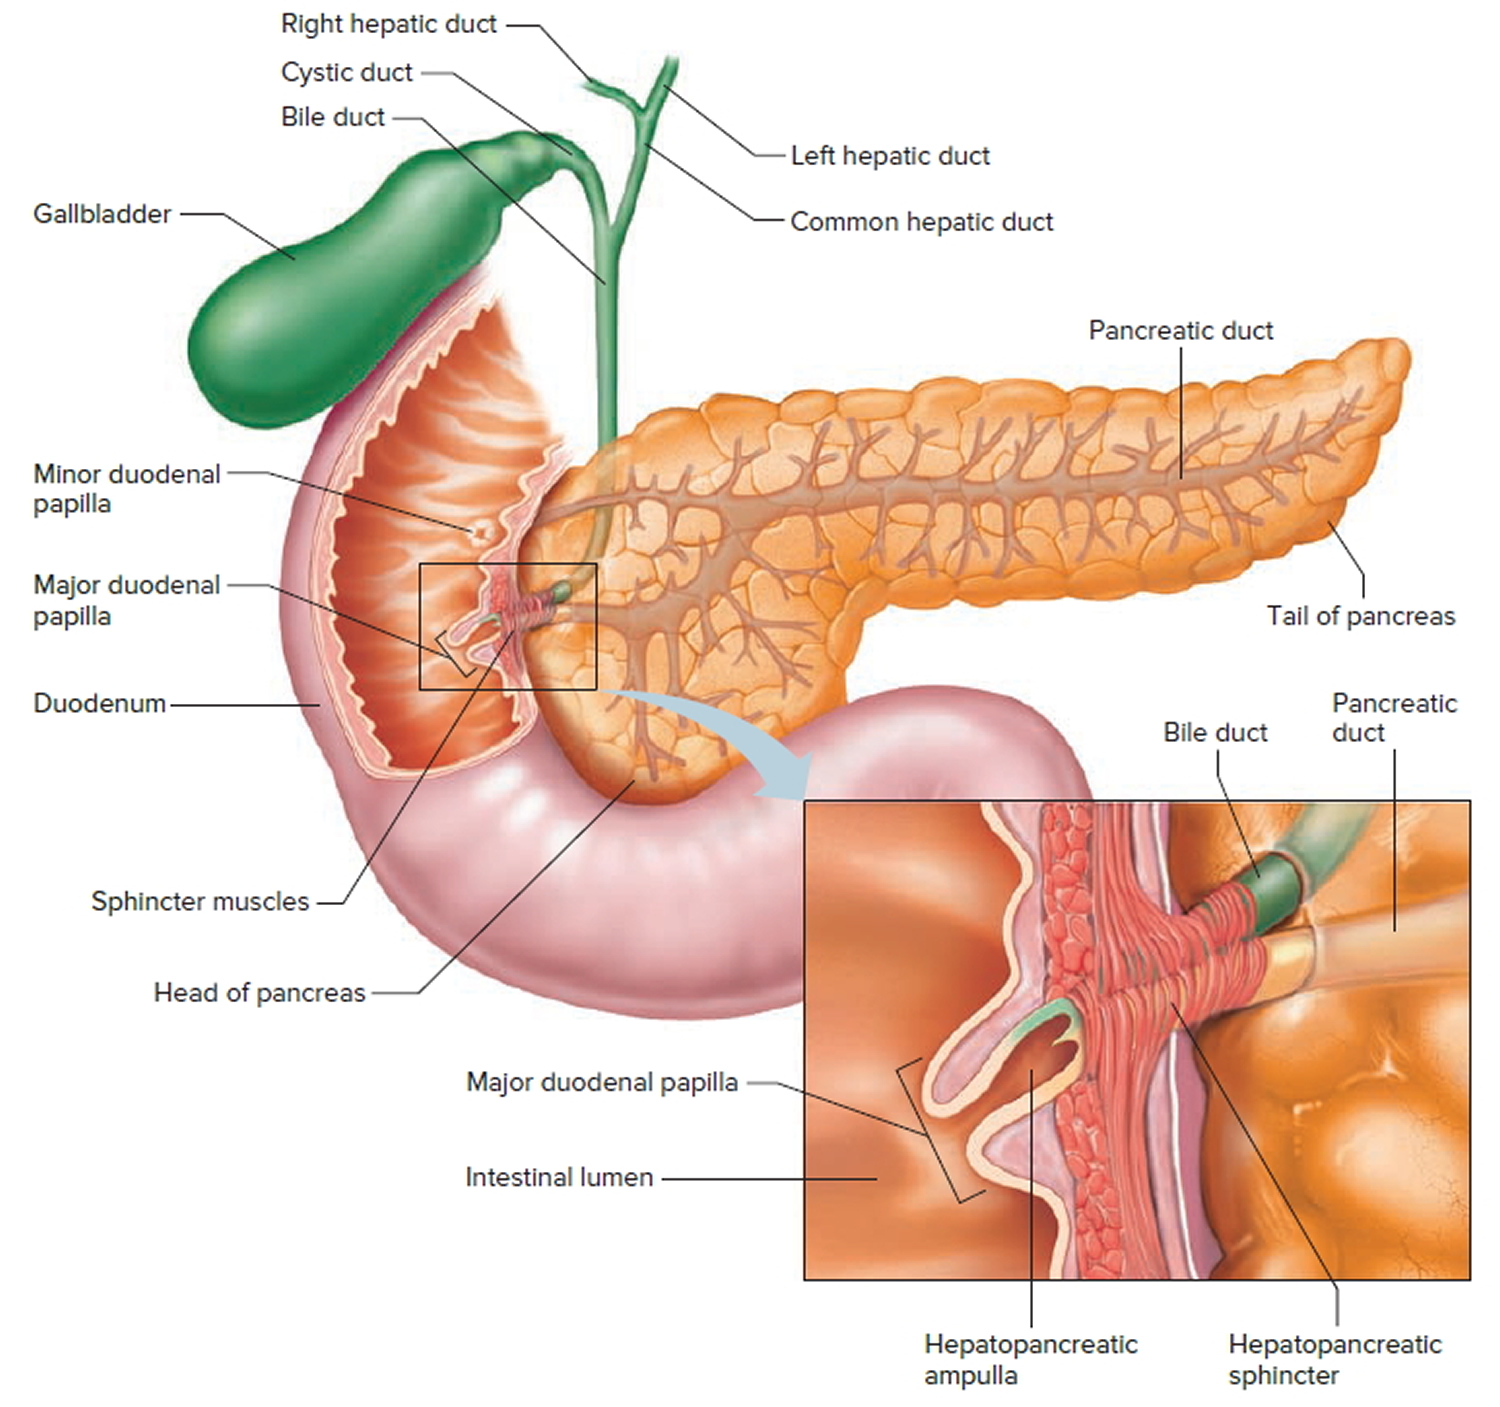 bile duct and pancreatic duct opening into the duodenum